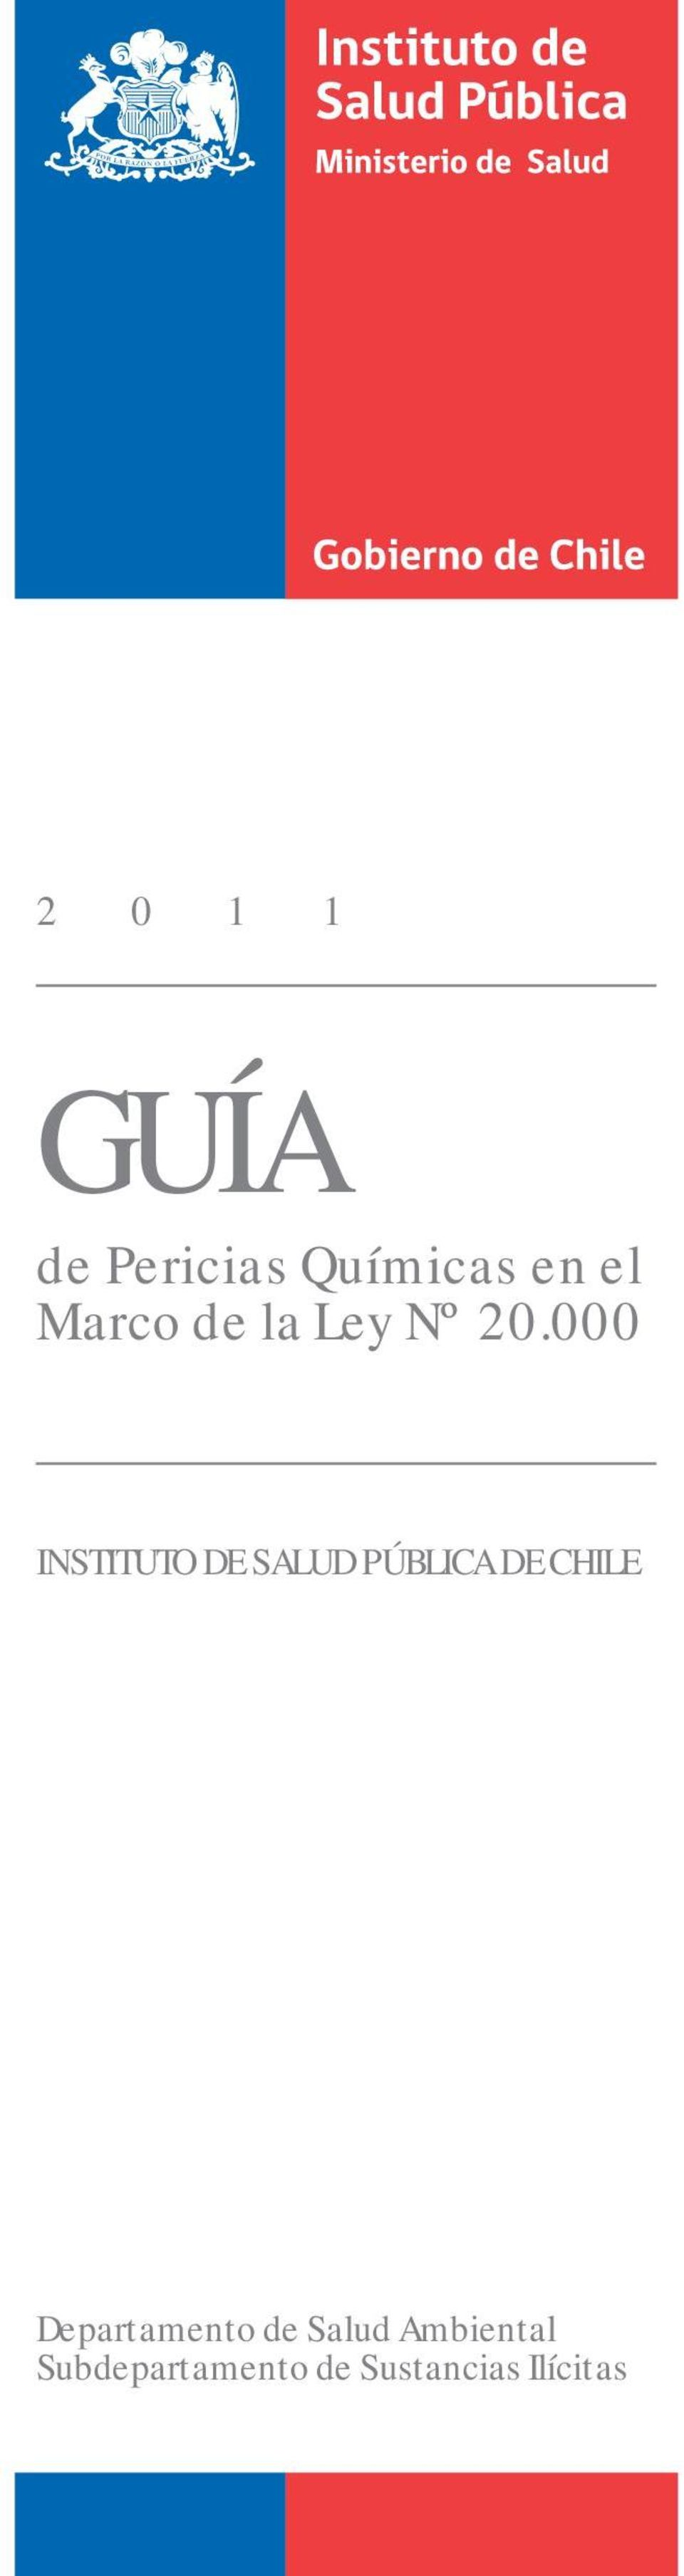 000 INSTITUTO DE SALUD PÚBLICA DE CHILE